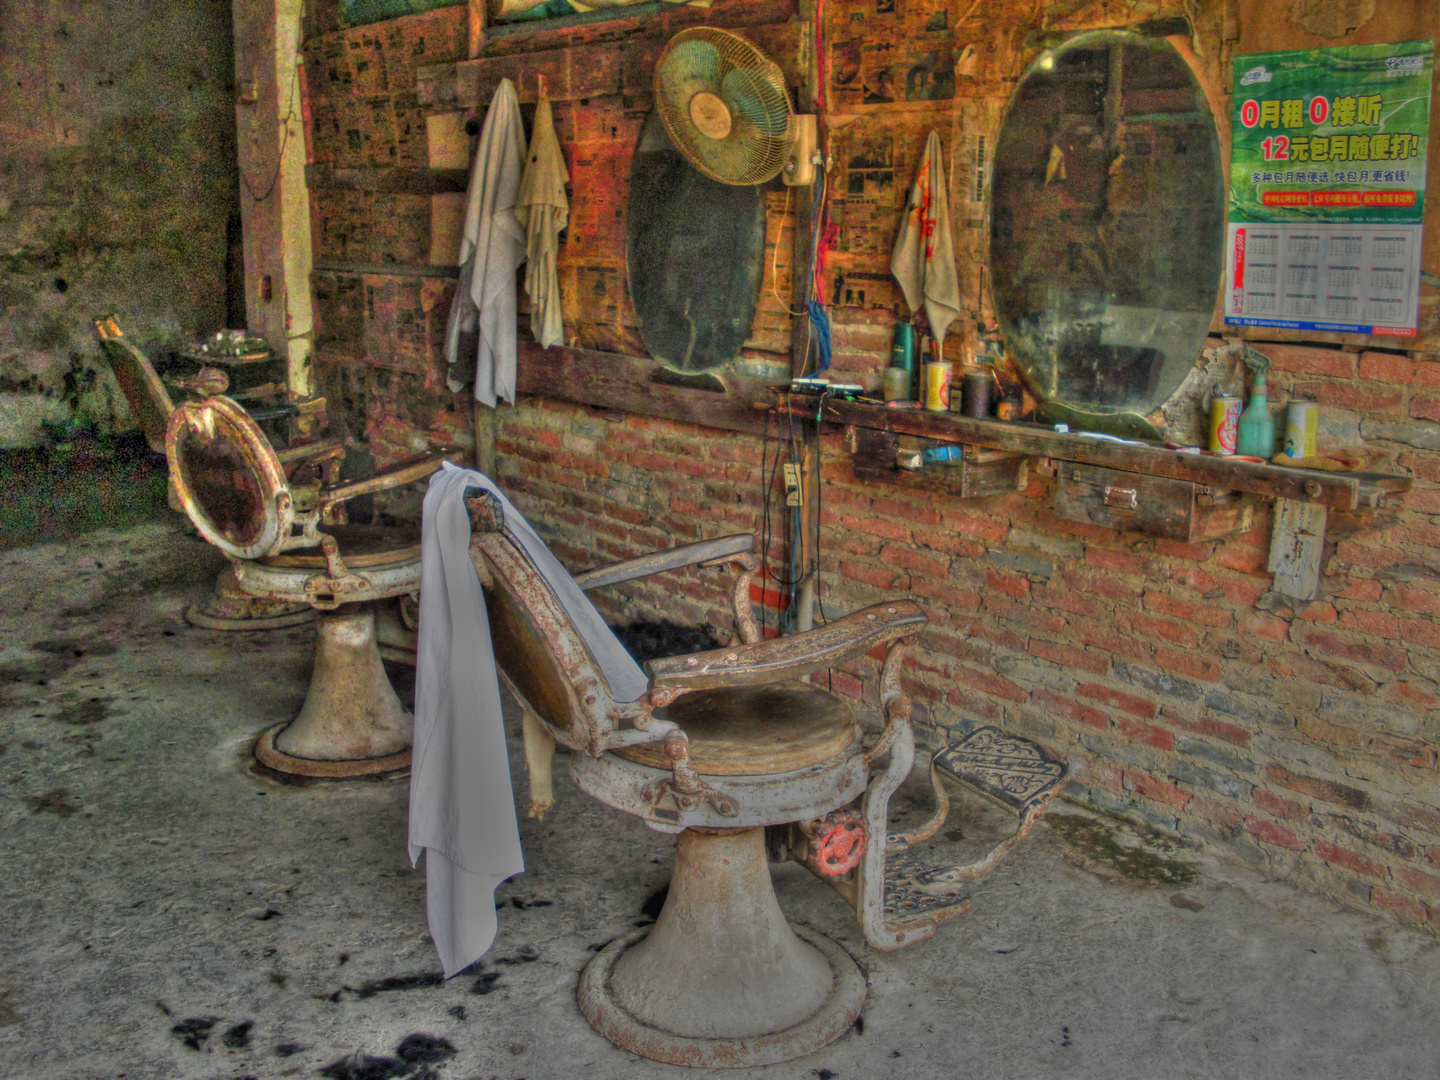 Guilin's Barber Shop